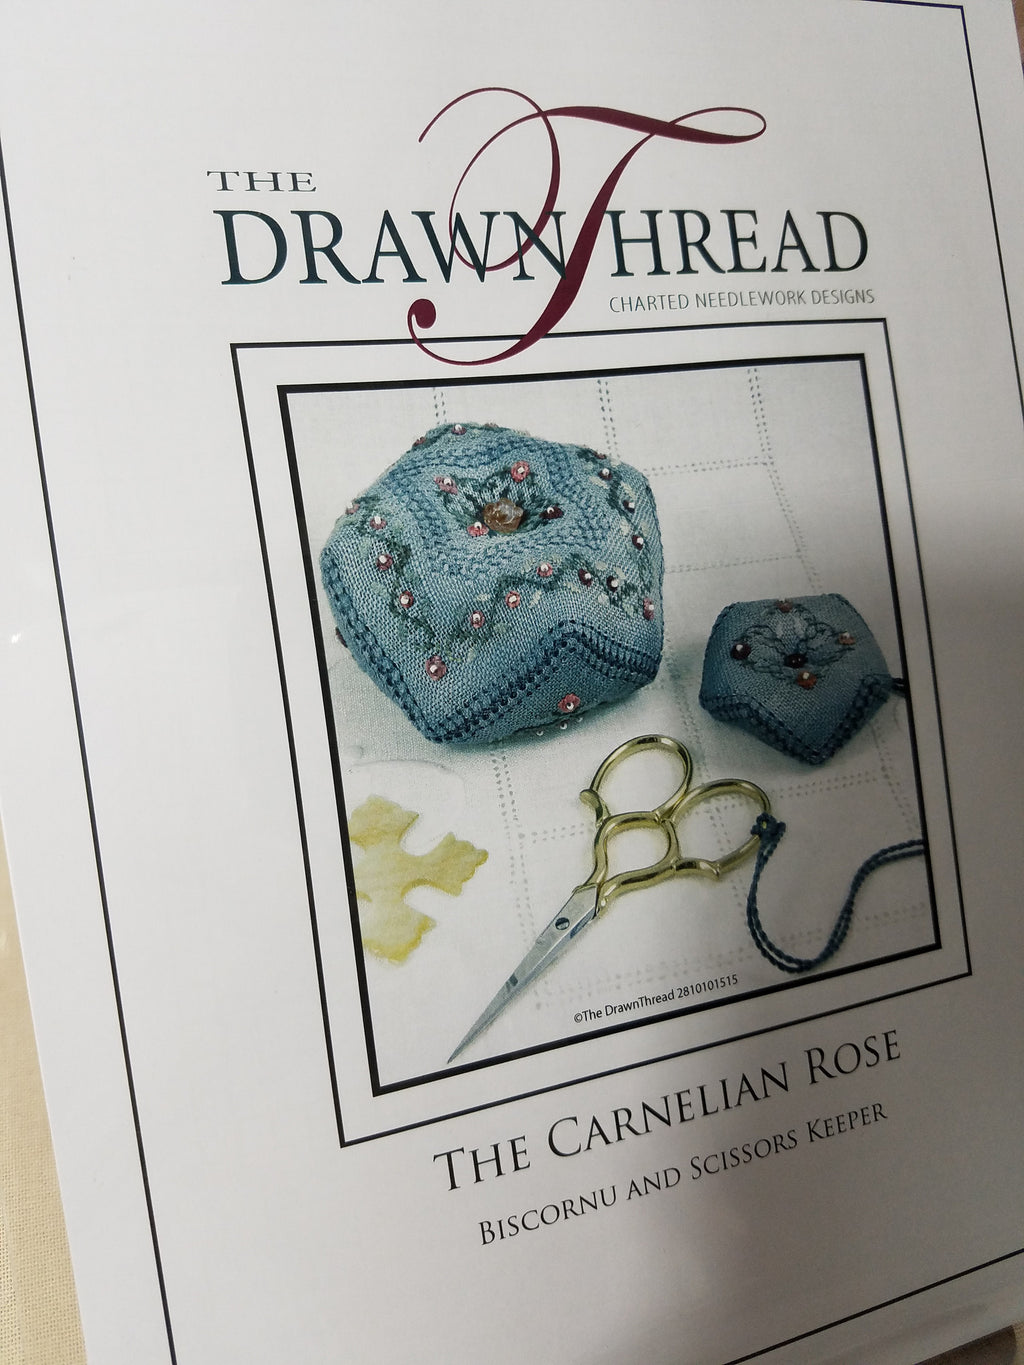 THE CARNELIAN ROSE BISCORNU ~ The Drawn Thread